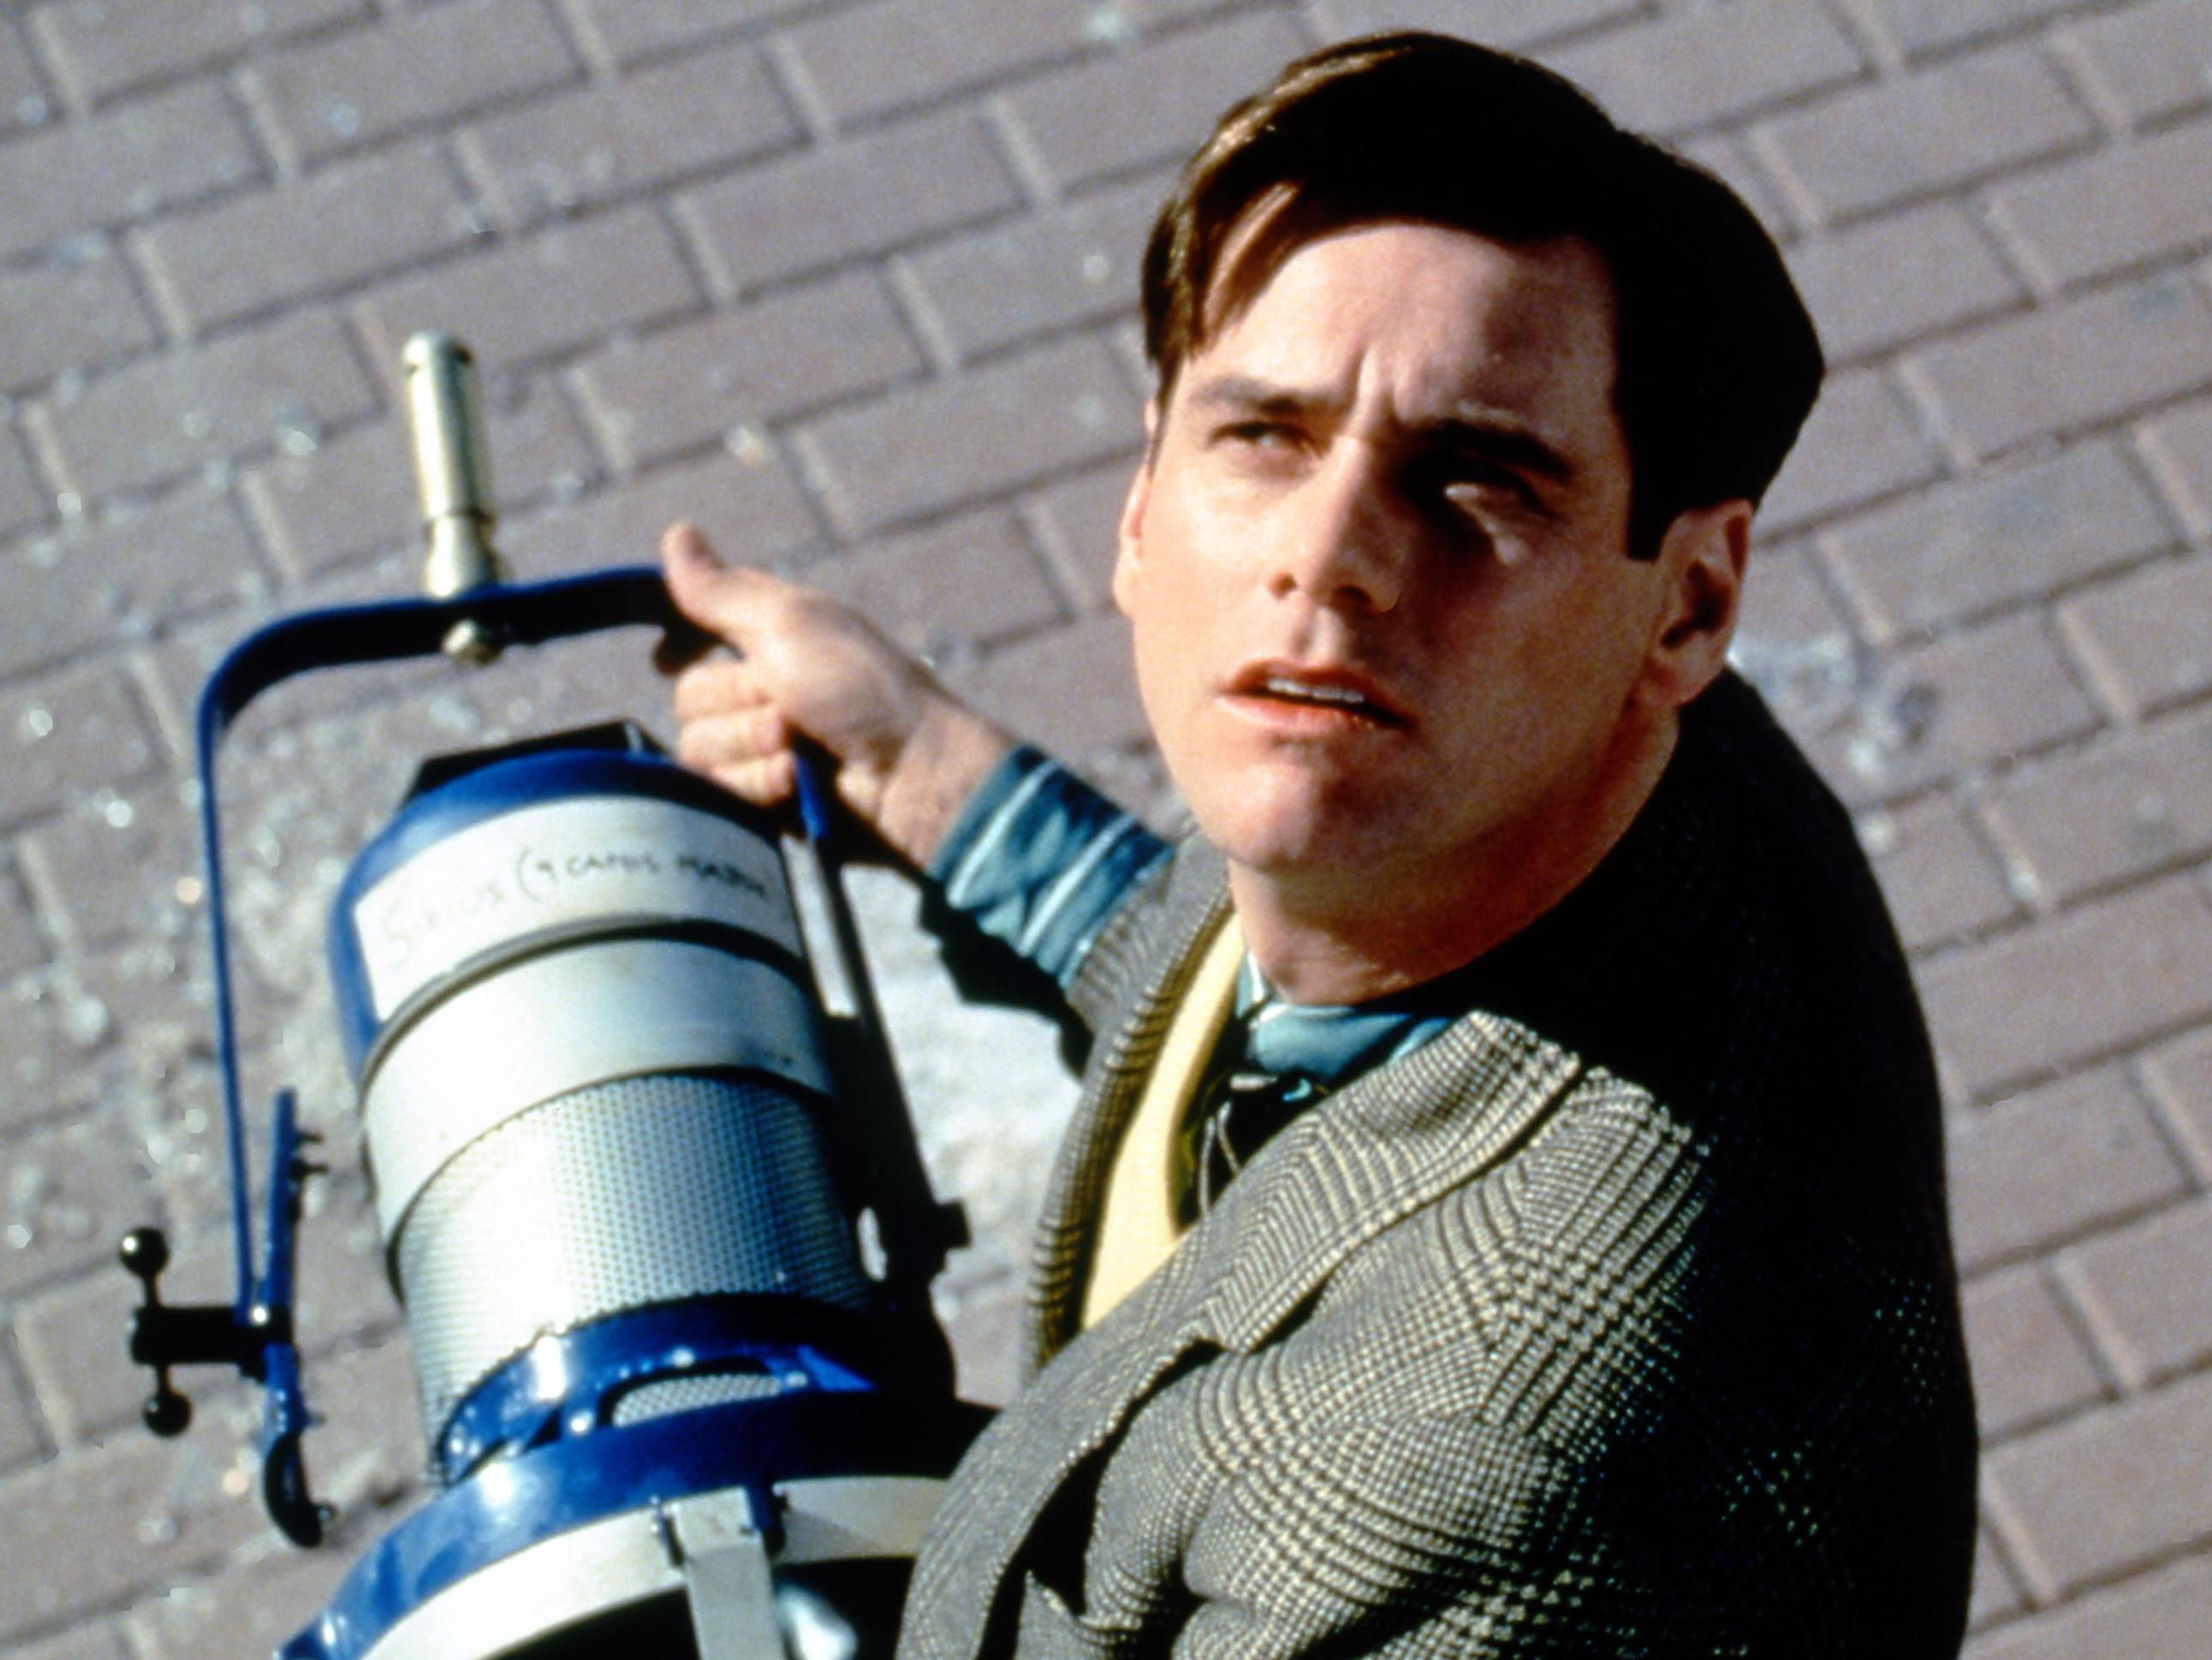 the truman show distinctively visual He's the star of the show--but he doesn't know jim carrey wowed critics and audiences alike as unwitting truman burbank in this marvel of a movie from director peter weir (witness, dead poets society) about a man whose life is a nonstop tv show truman doesn't realize that his quaint hometown is a giant studio set run by a visionary producer/director/creator (ed harris), that folks living and.